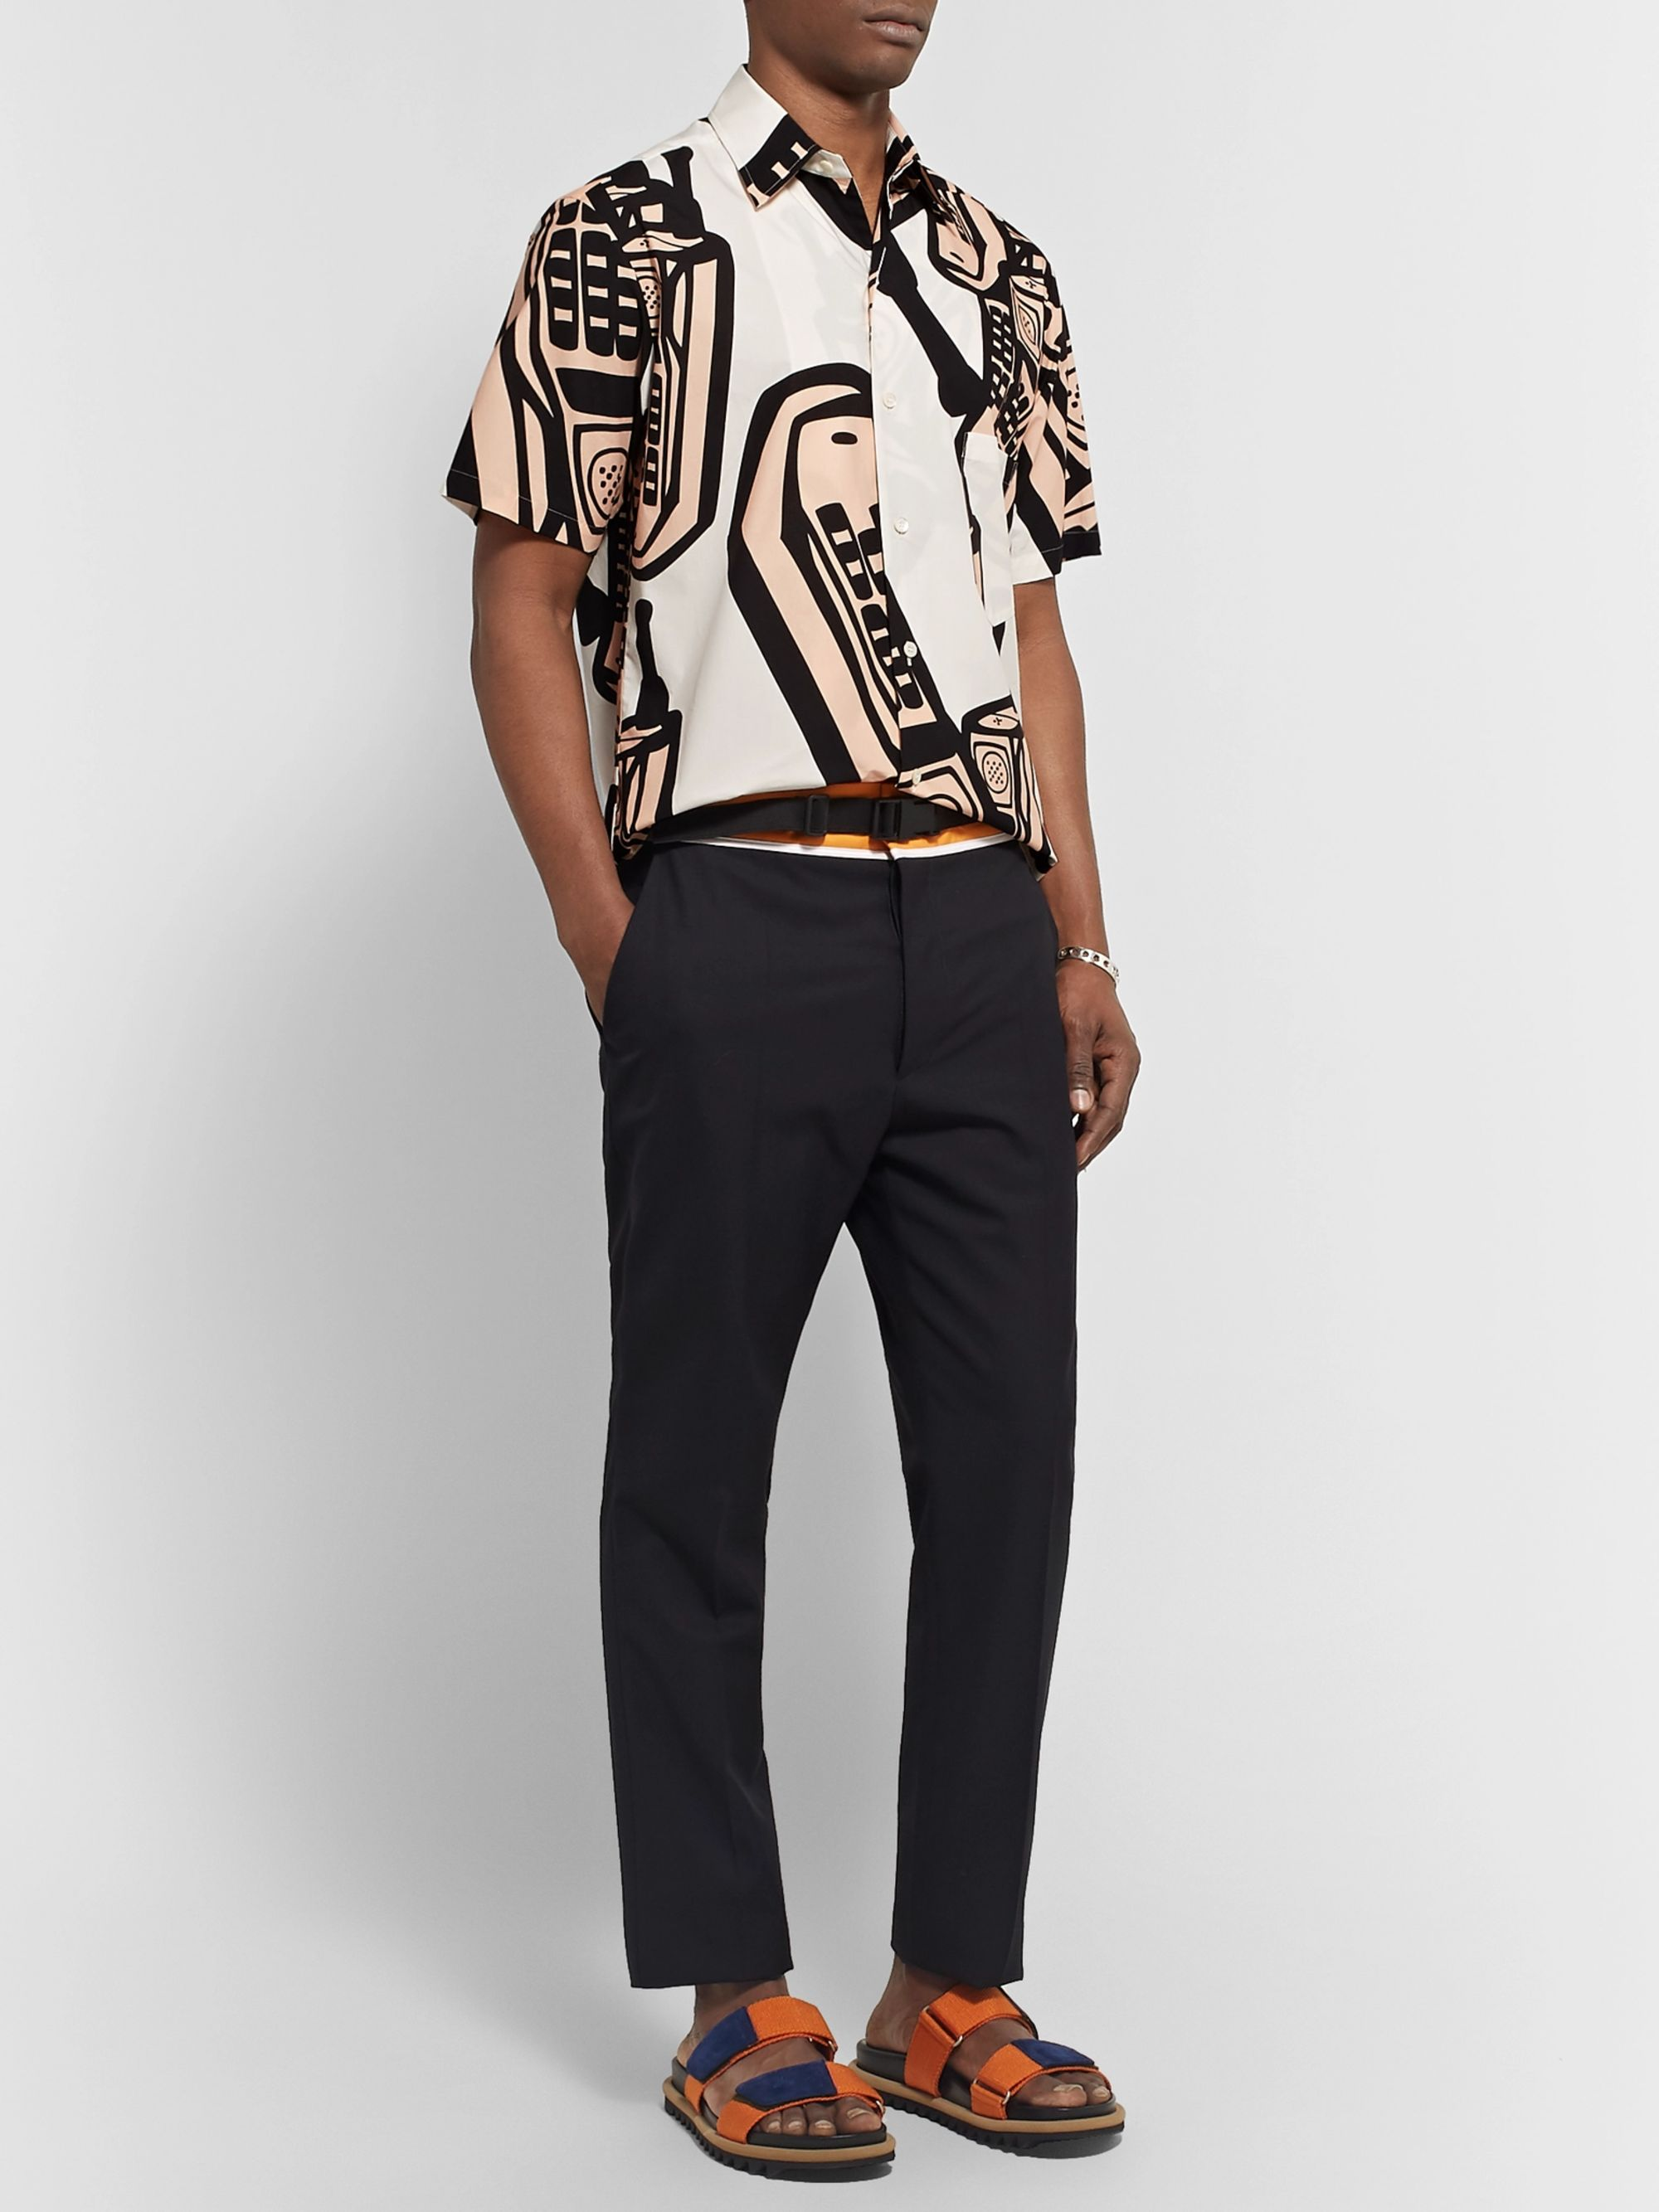 Maison Margiela Printed Cotton Shirt